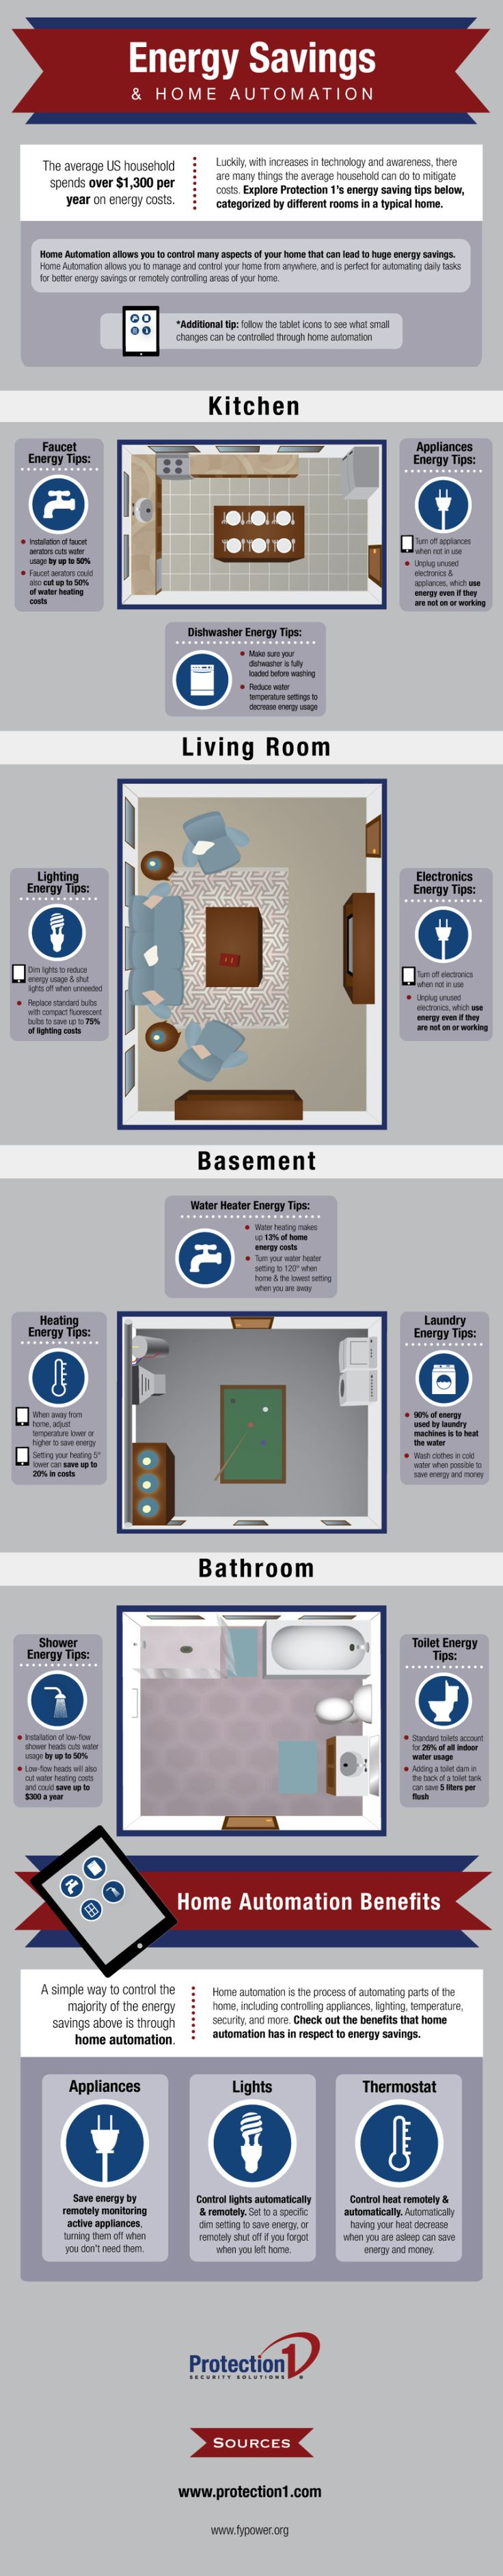 17 best images about energy saving tips on pinterest for Home automation shower